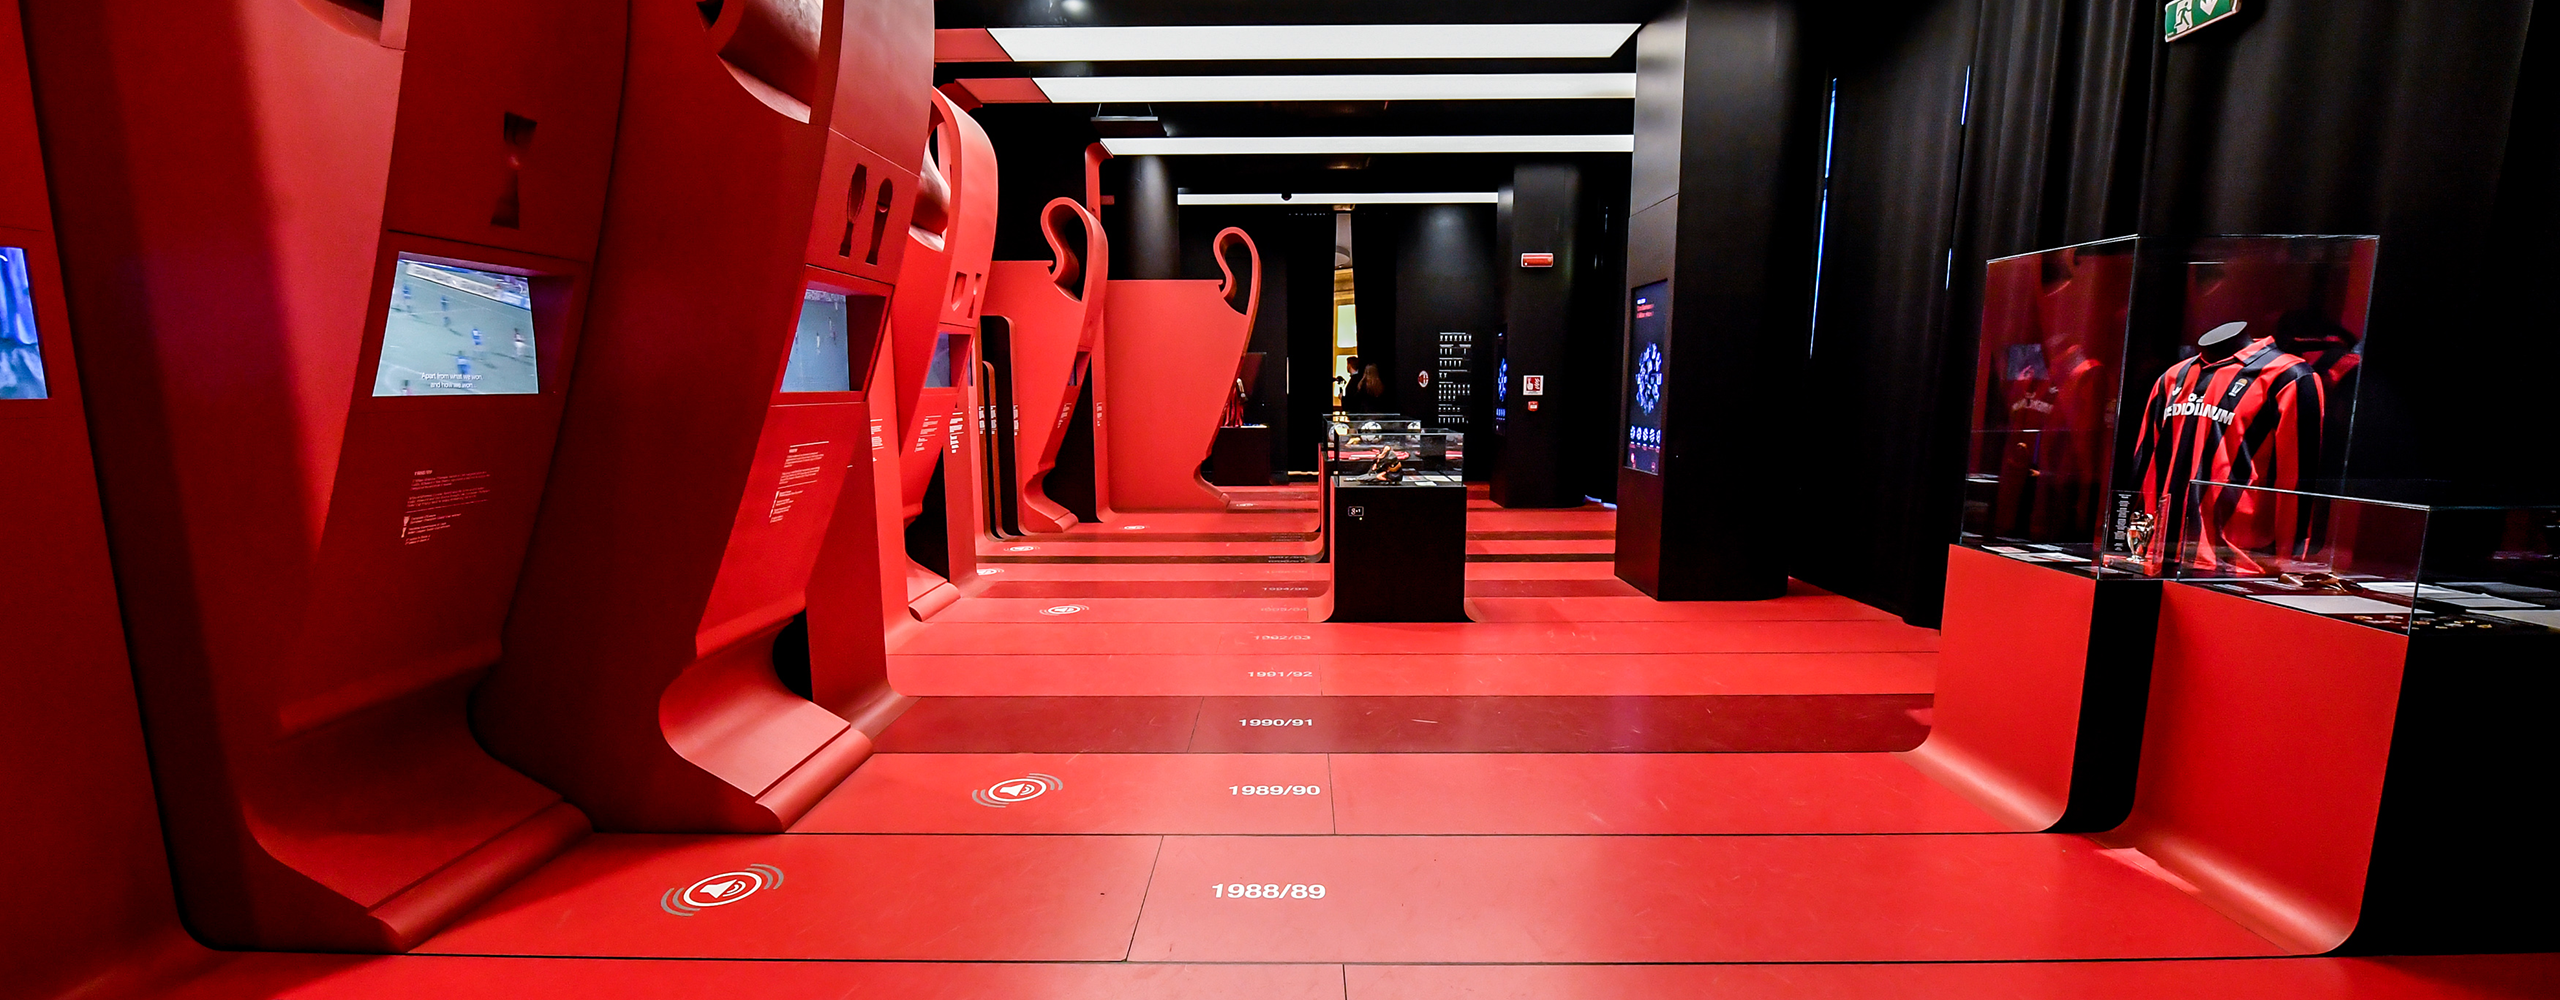 Mondo Milan Museum, buy your tickets for Casa Milan